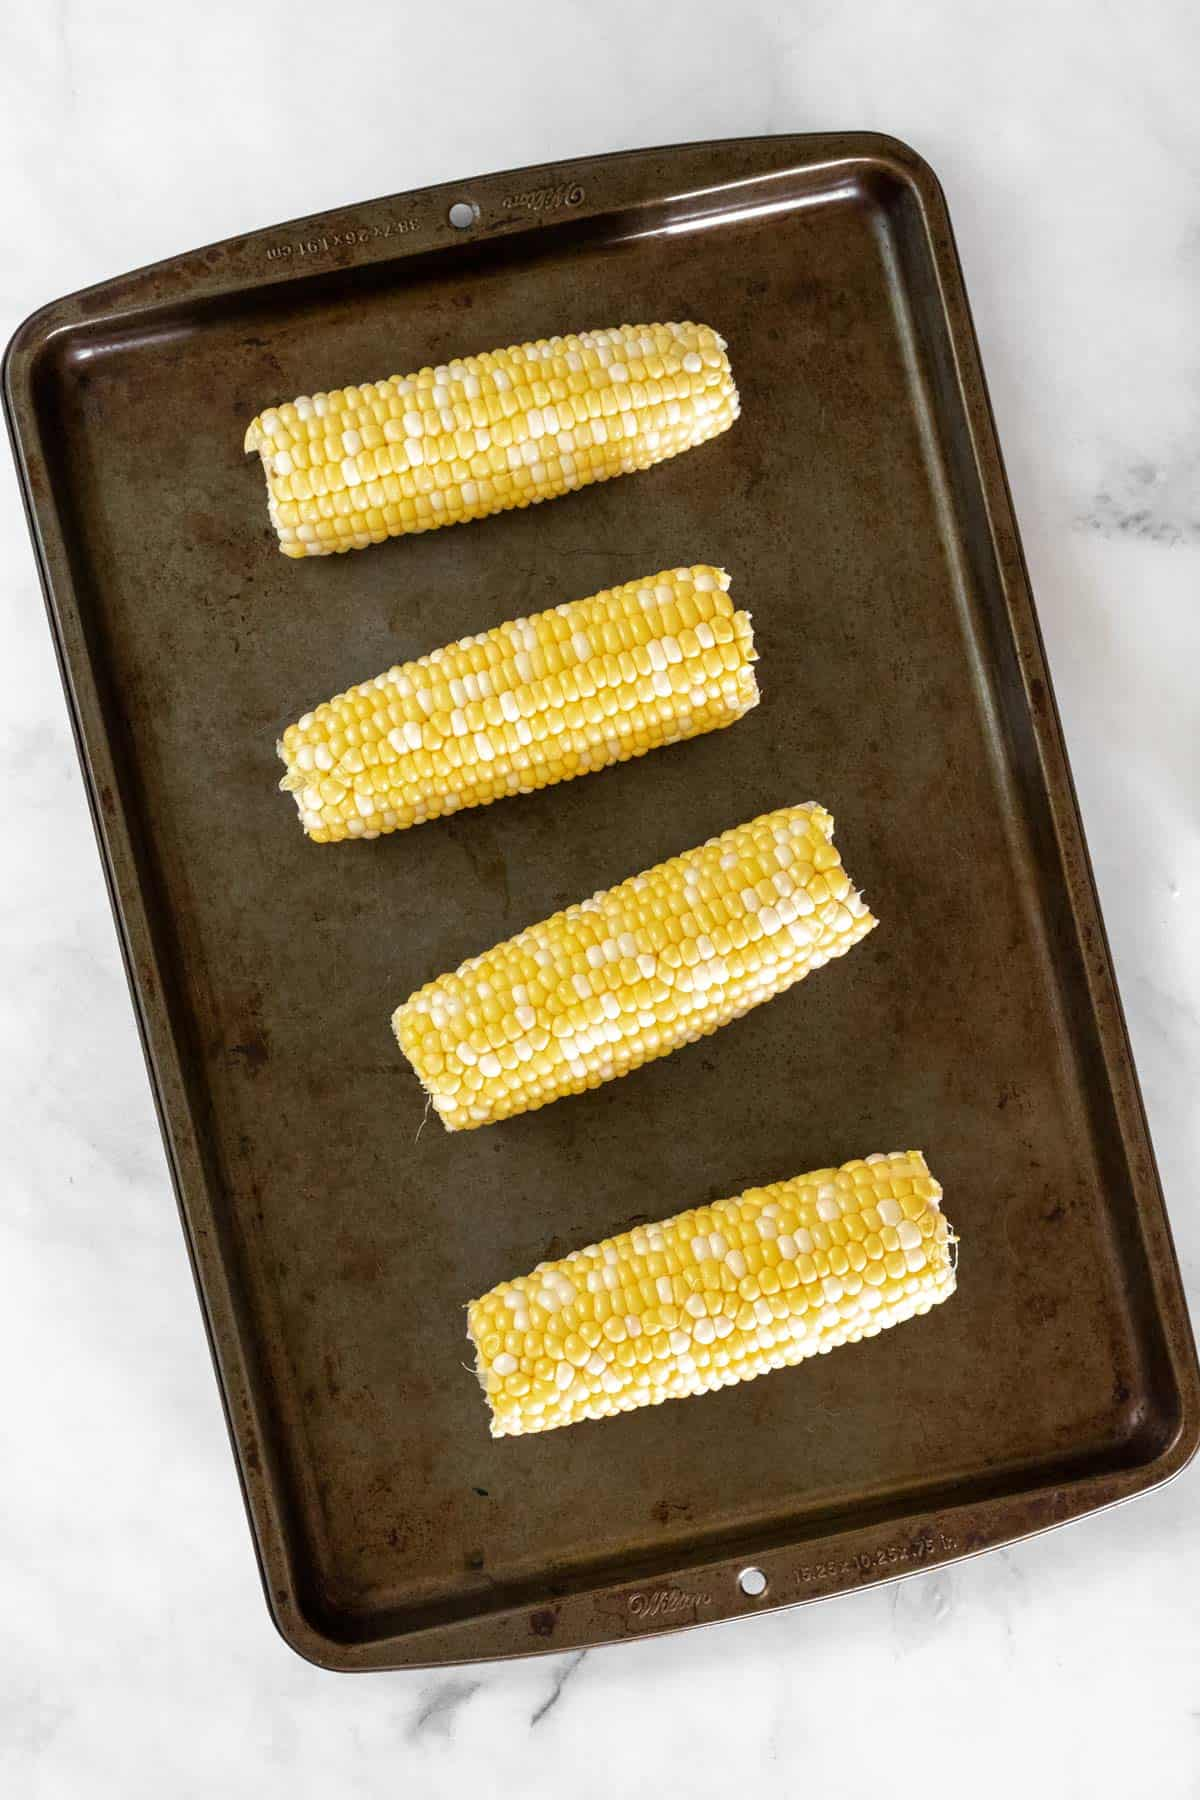 Uncooked corn on the cob on a sheet pan.